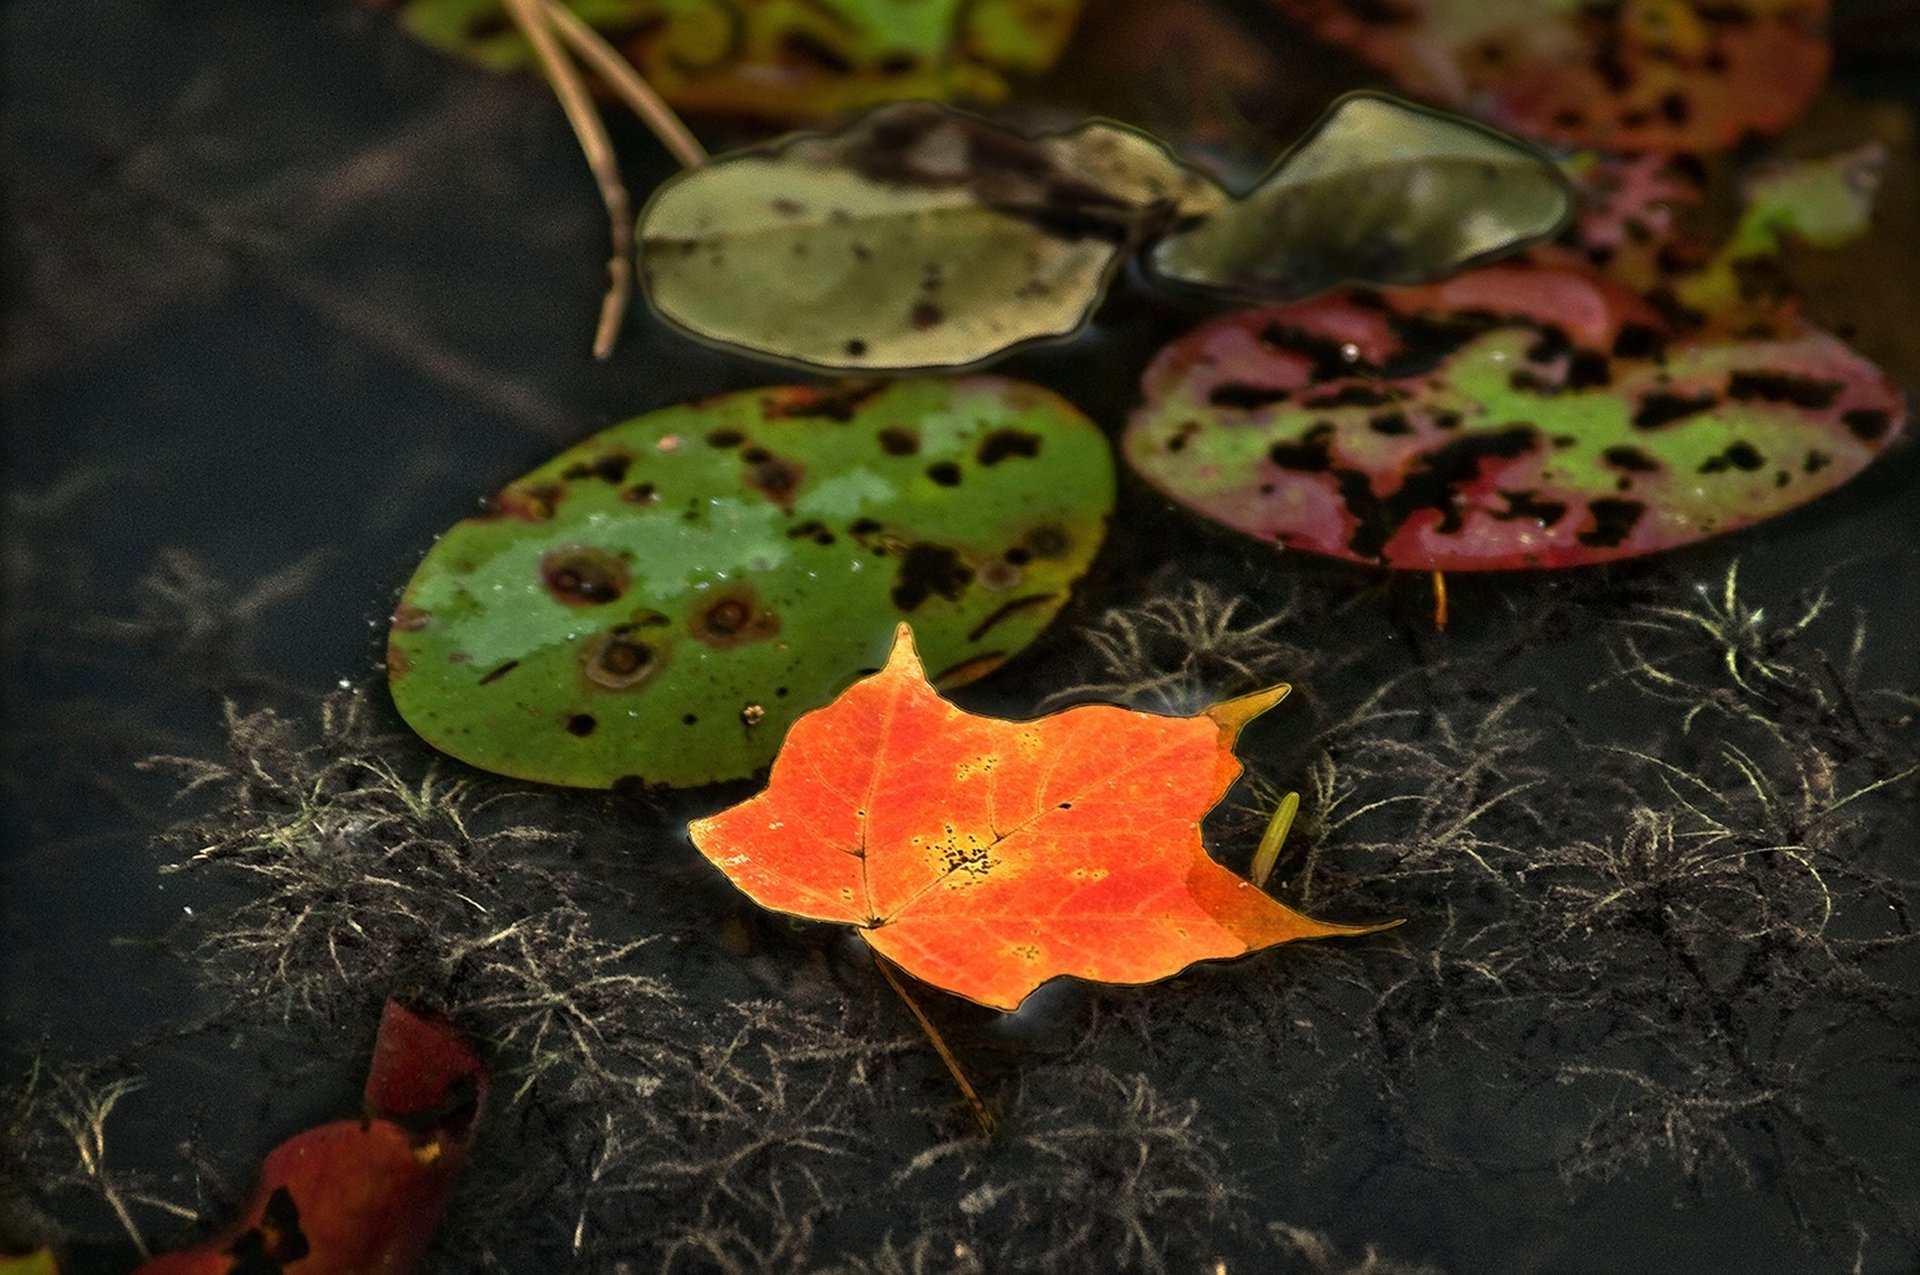 Lilly pad and Maple